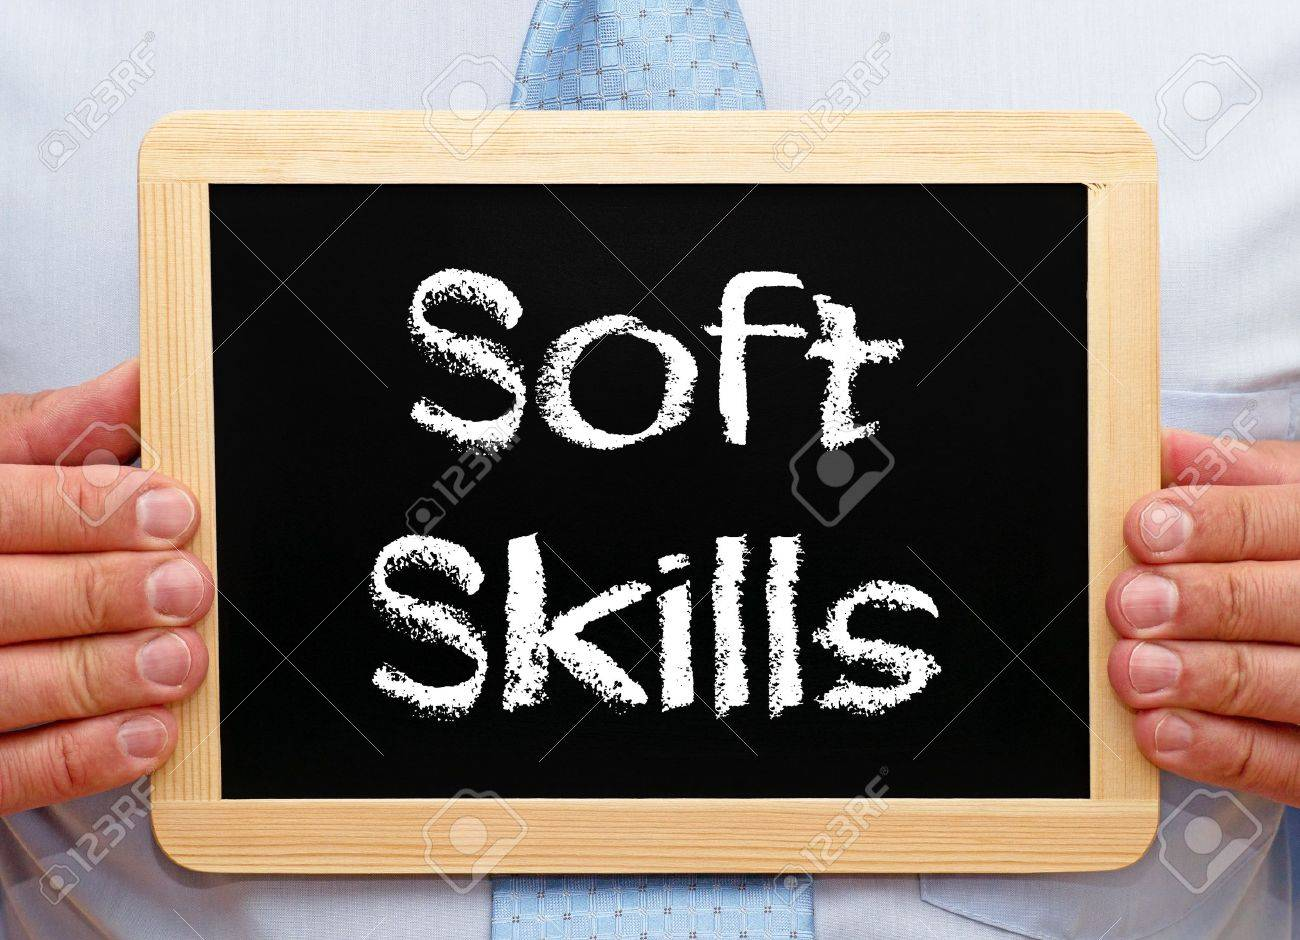 soft skills stock photo picture and royalty image image soft skills stock photo 18707858